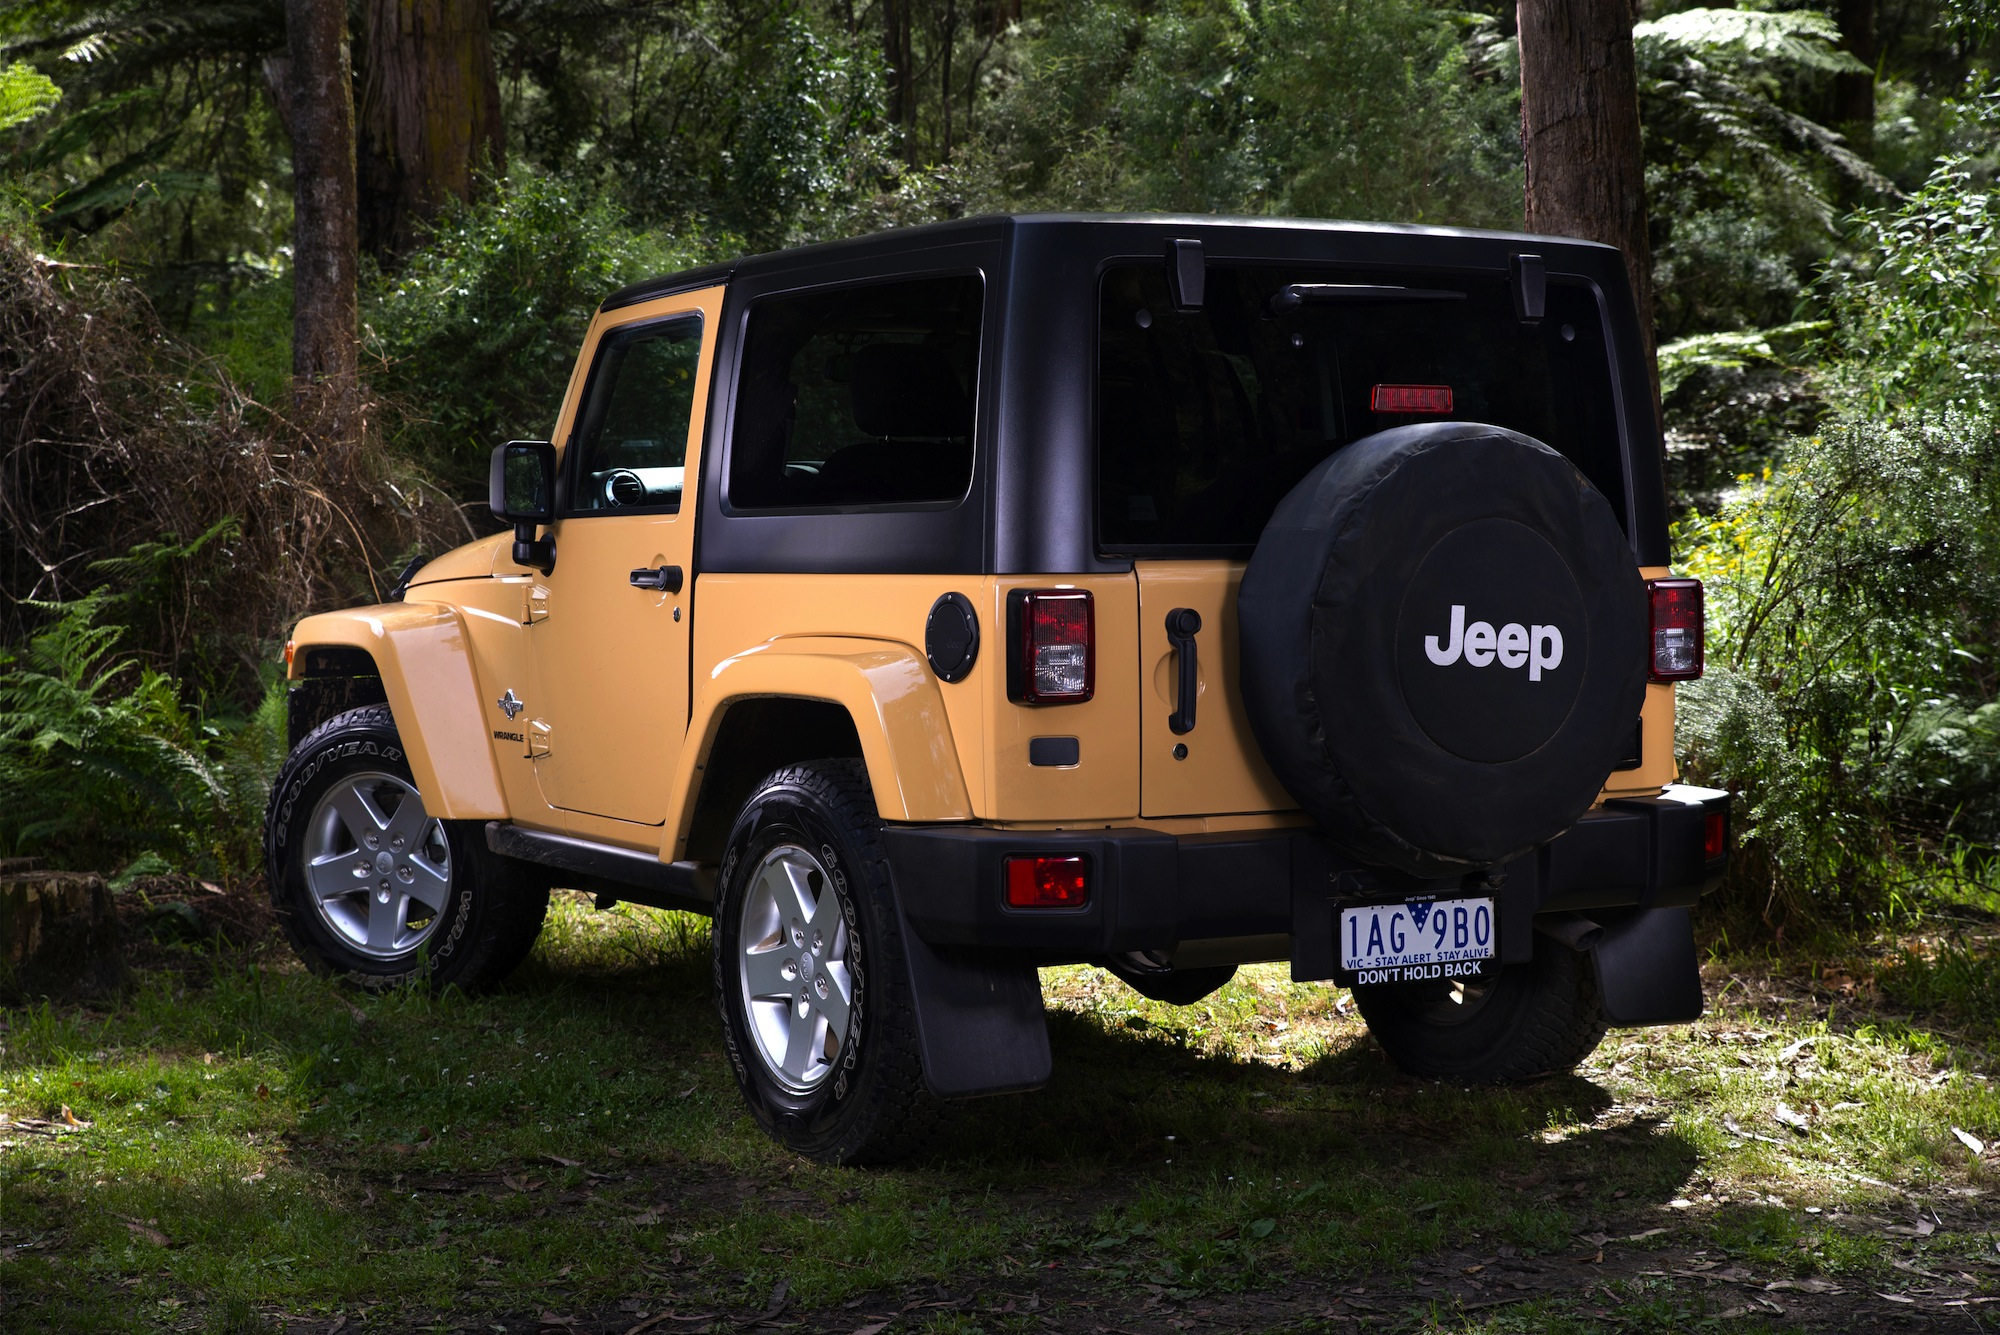 Jeep Wrangler Paint >> Jeep Wrangler Freedom : army-inspired special edition from $35,000 - photos | CarAdvice